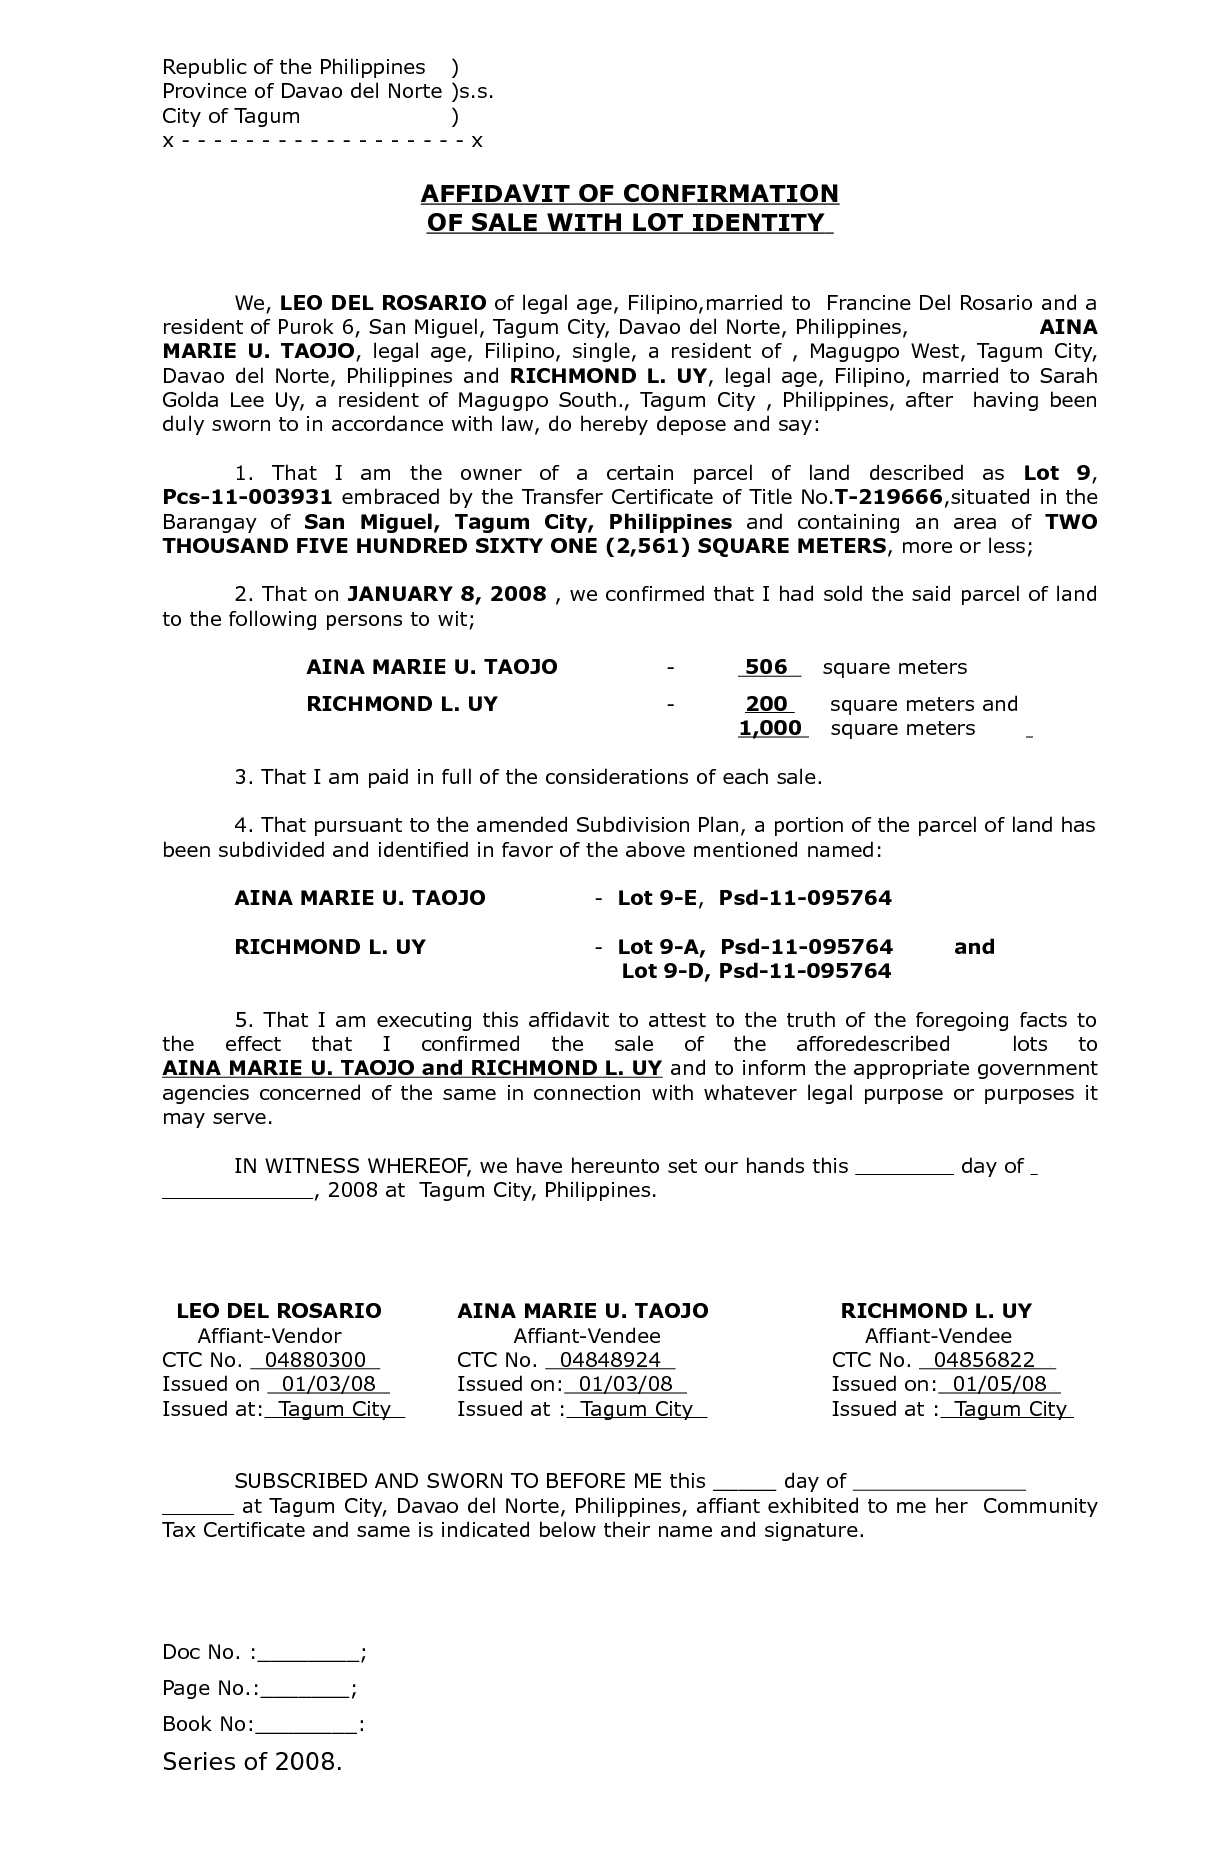 Calam 233 O Affidavit Of Confirmation Of Sale With Lot